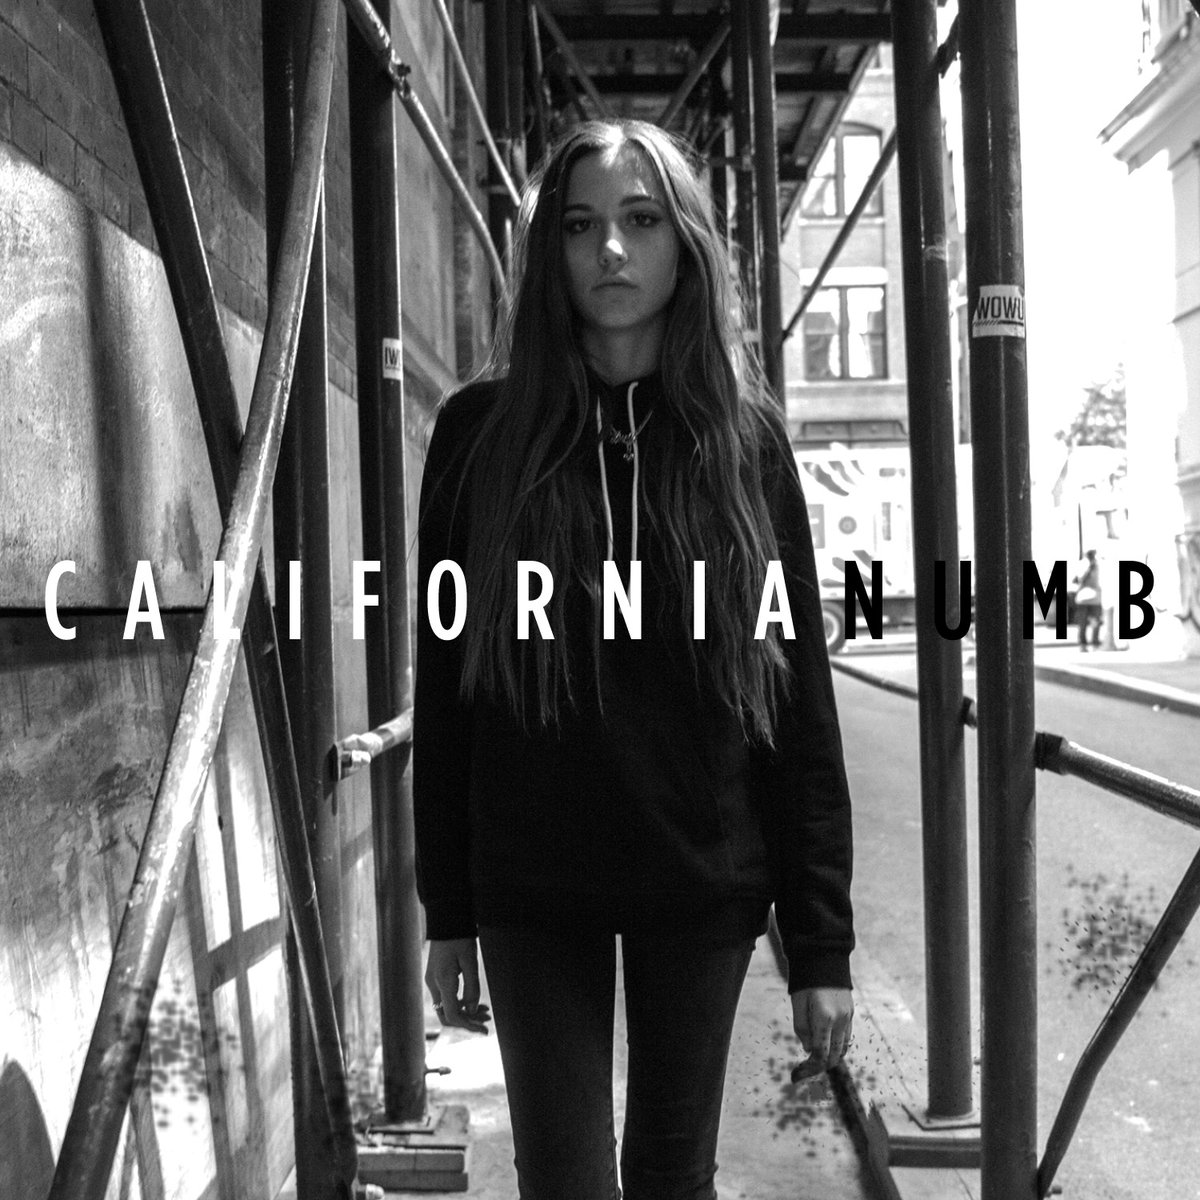 .@Clovesdot releases the all new track #CaliforniaNumb https://t.co/sFzpQd5lx8 https://t.co/96OUV2KiSb